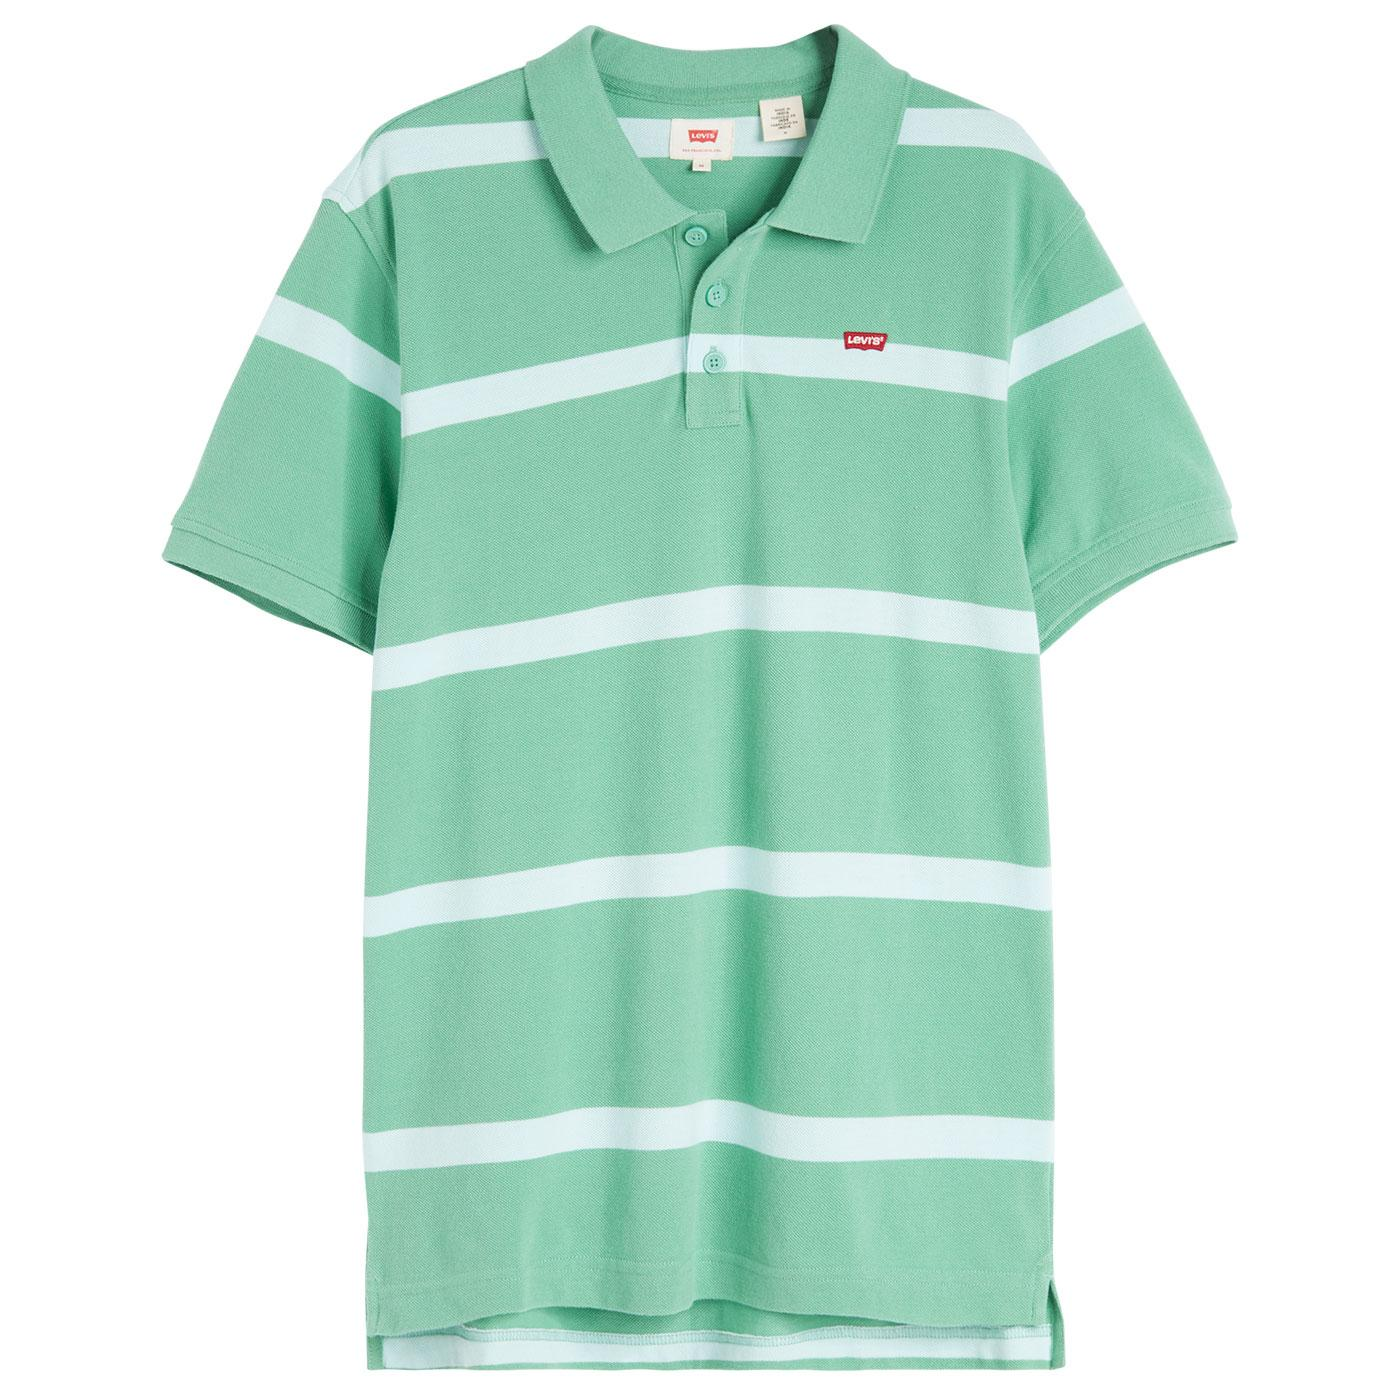 LEVI'S Retro Mod HM Good Jay Stripe Polo Top GREEN